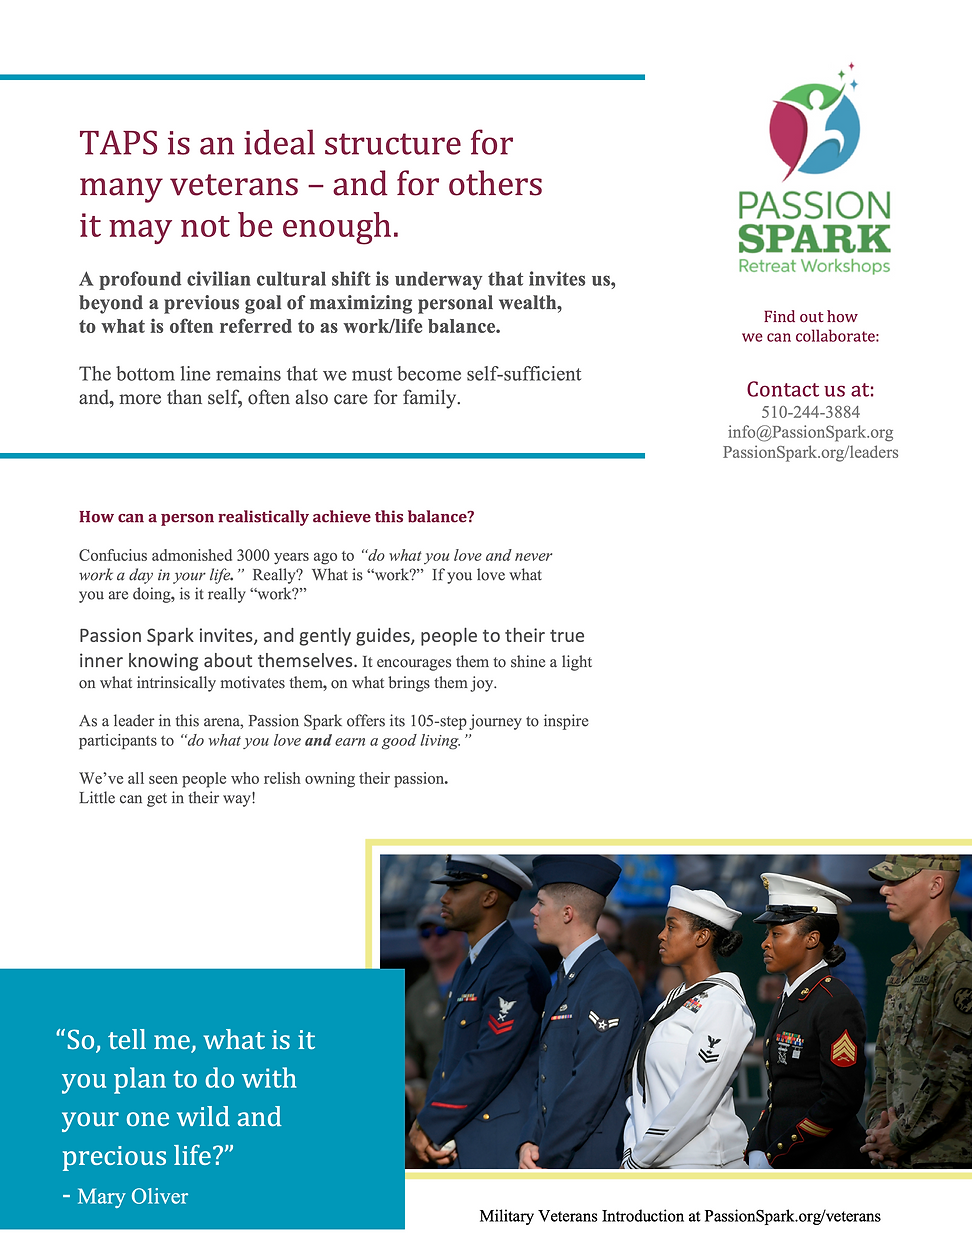 Veterans Introduction to Passion Spark Retreats_lm.png